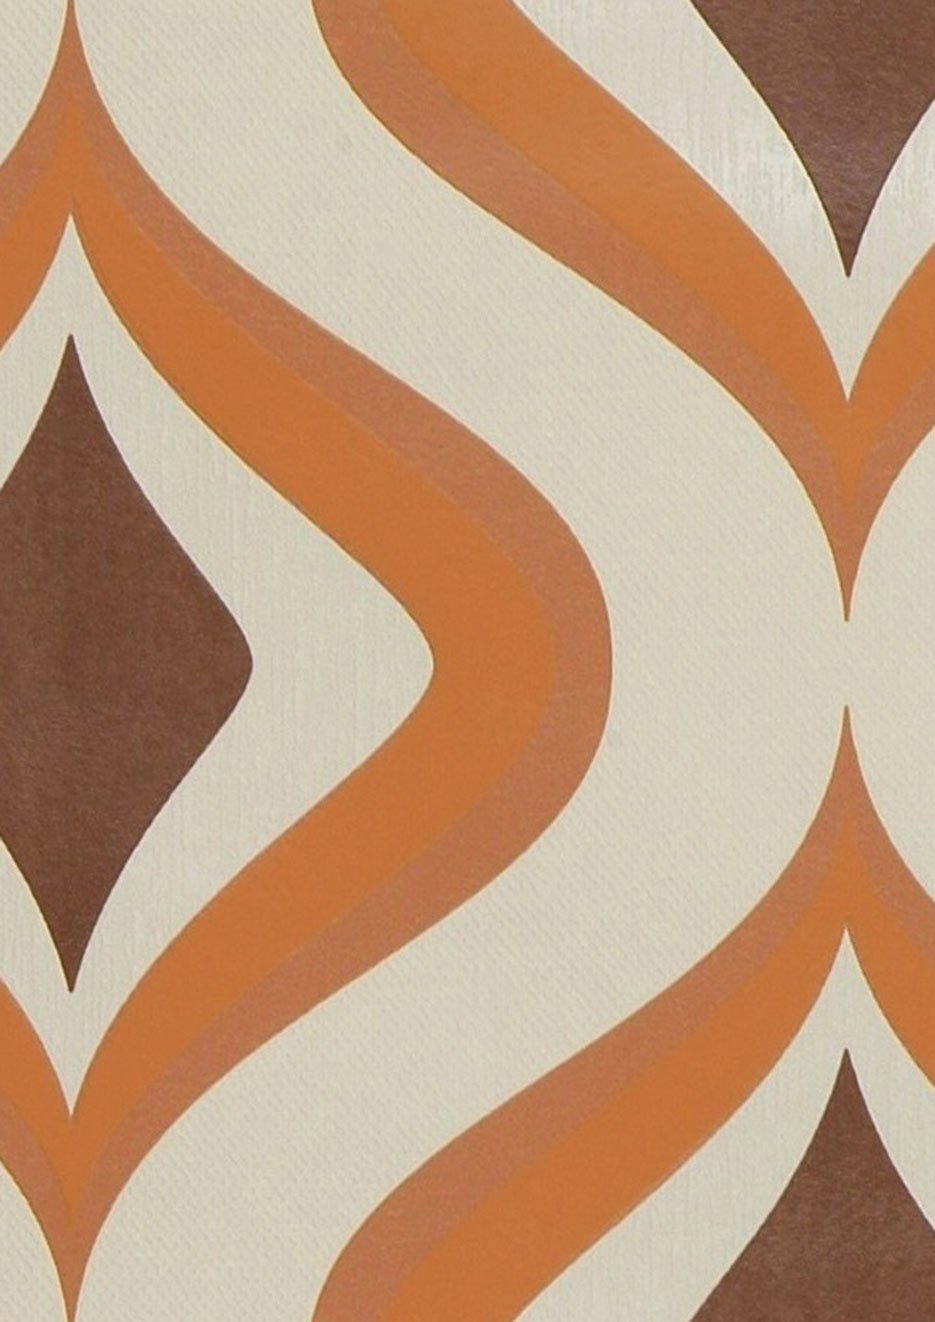 70s Wallpaper Patterns 70s 935x1322